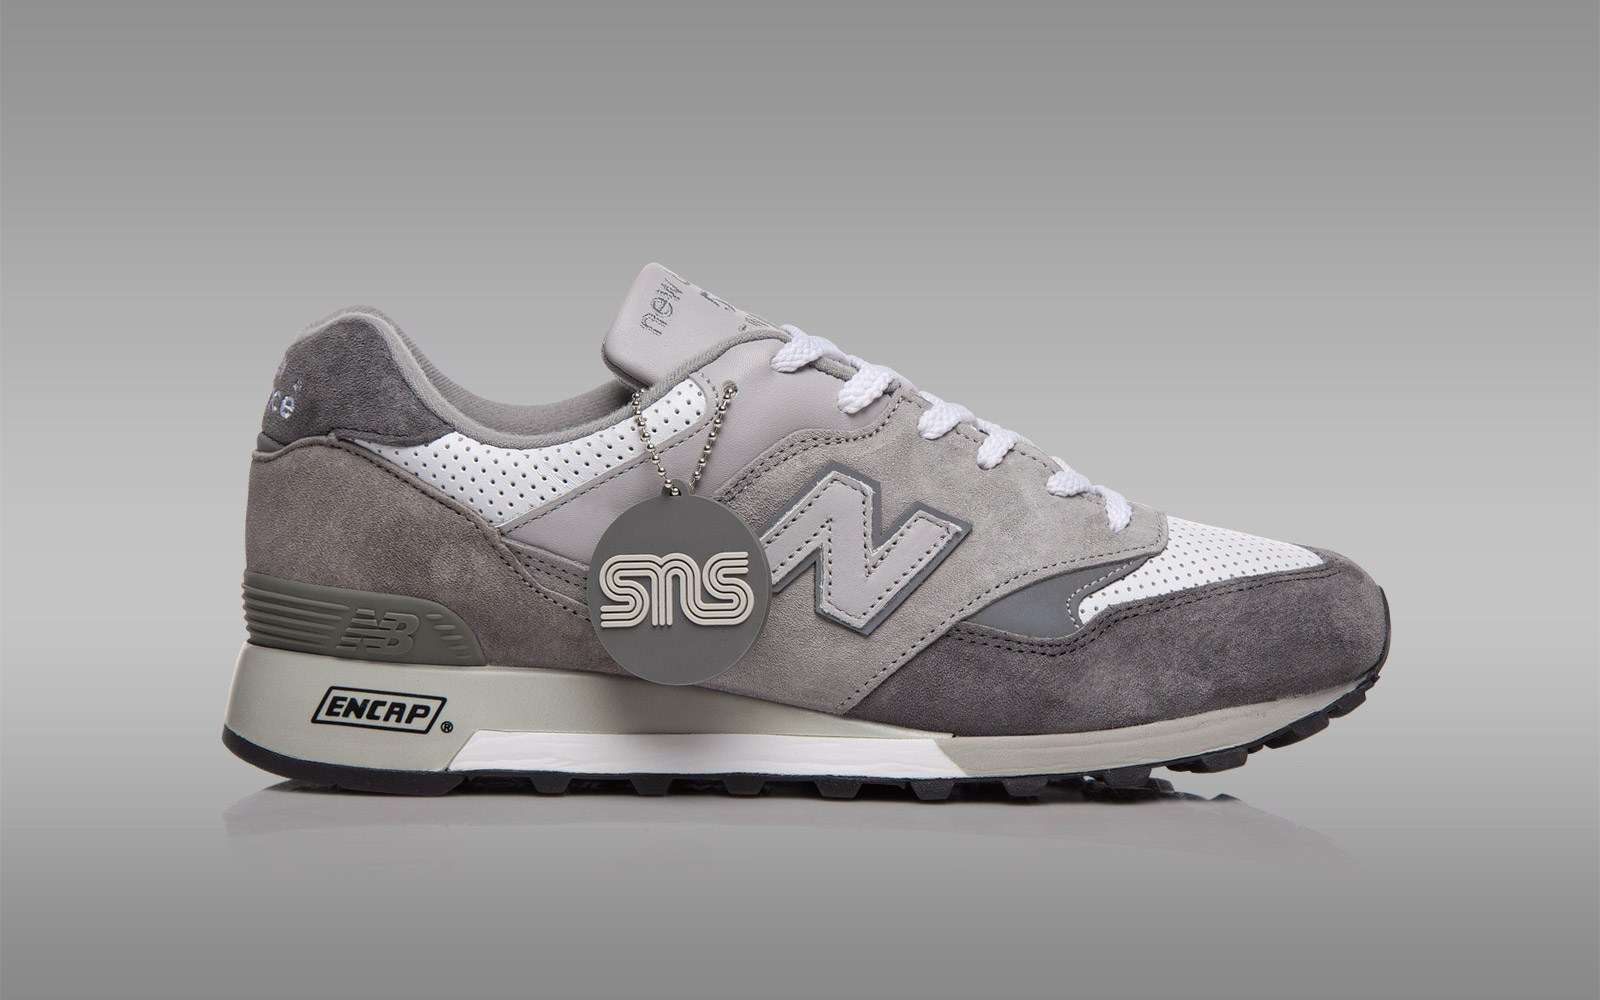 Sneakersstuff x Milkcrate Athletics x New Balance 577 'SNS' - Now Available